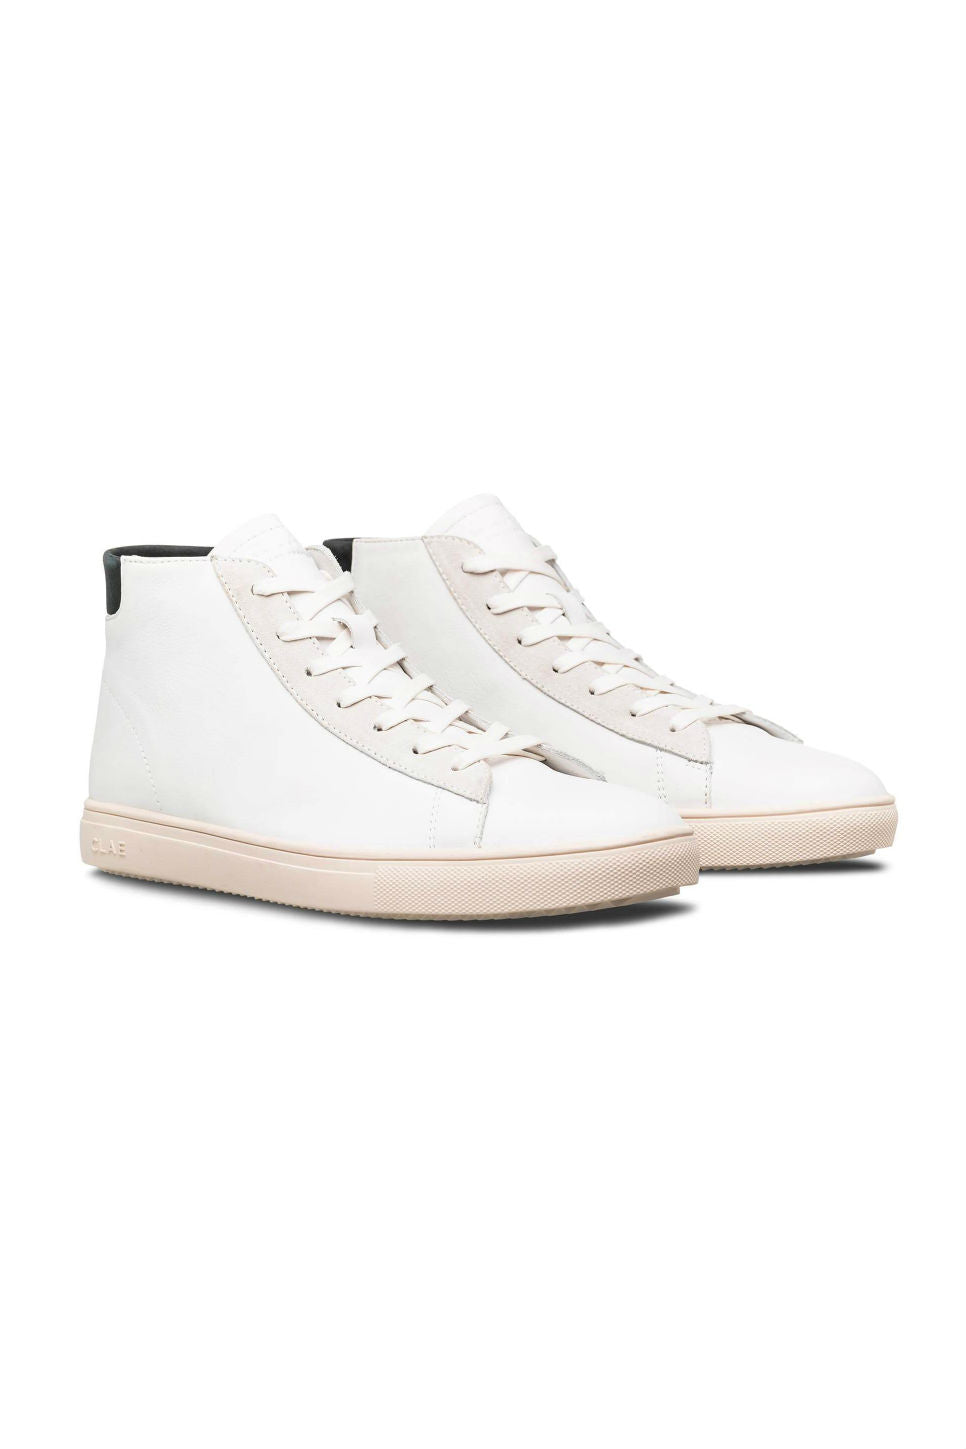 CLAE - Bradley Mid - White Leather/Black - Profile